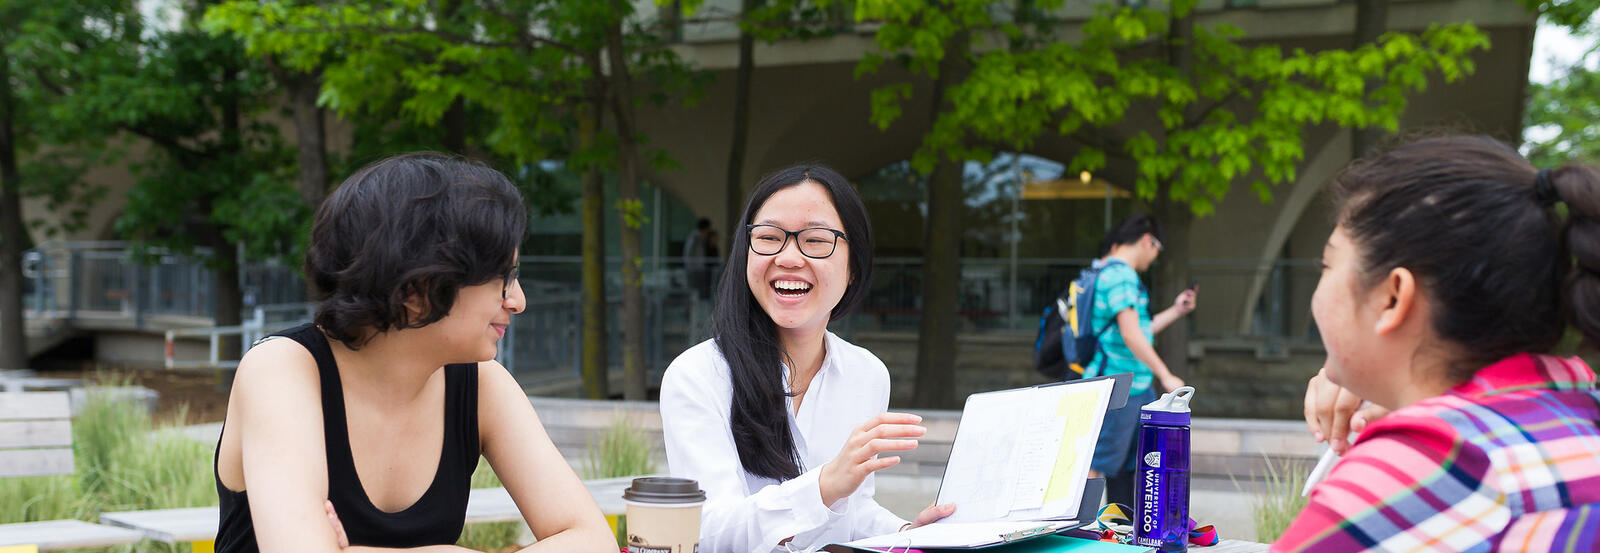 students having coffee on campus